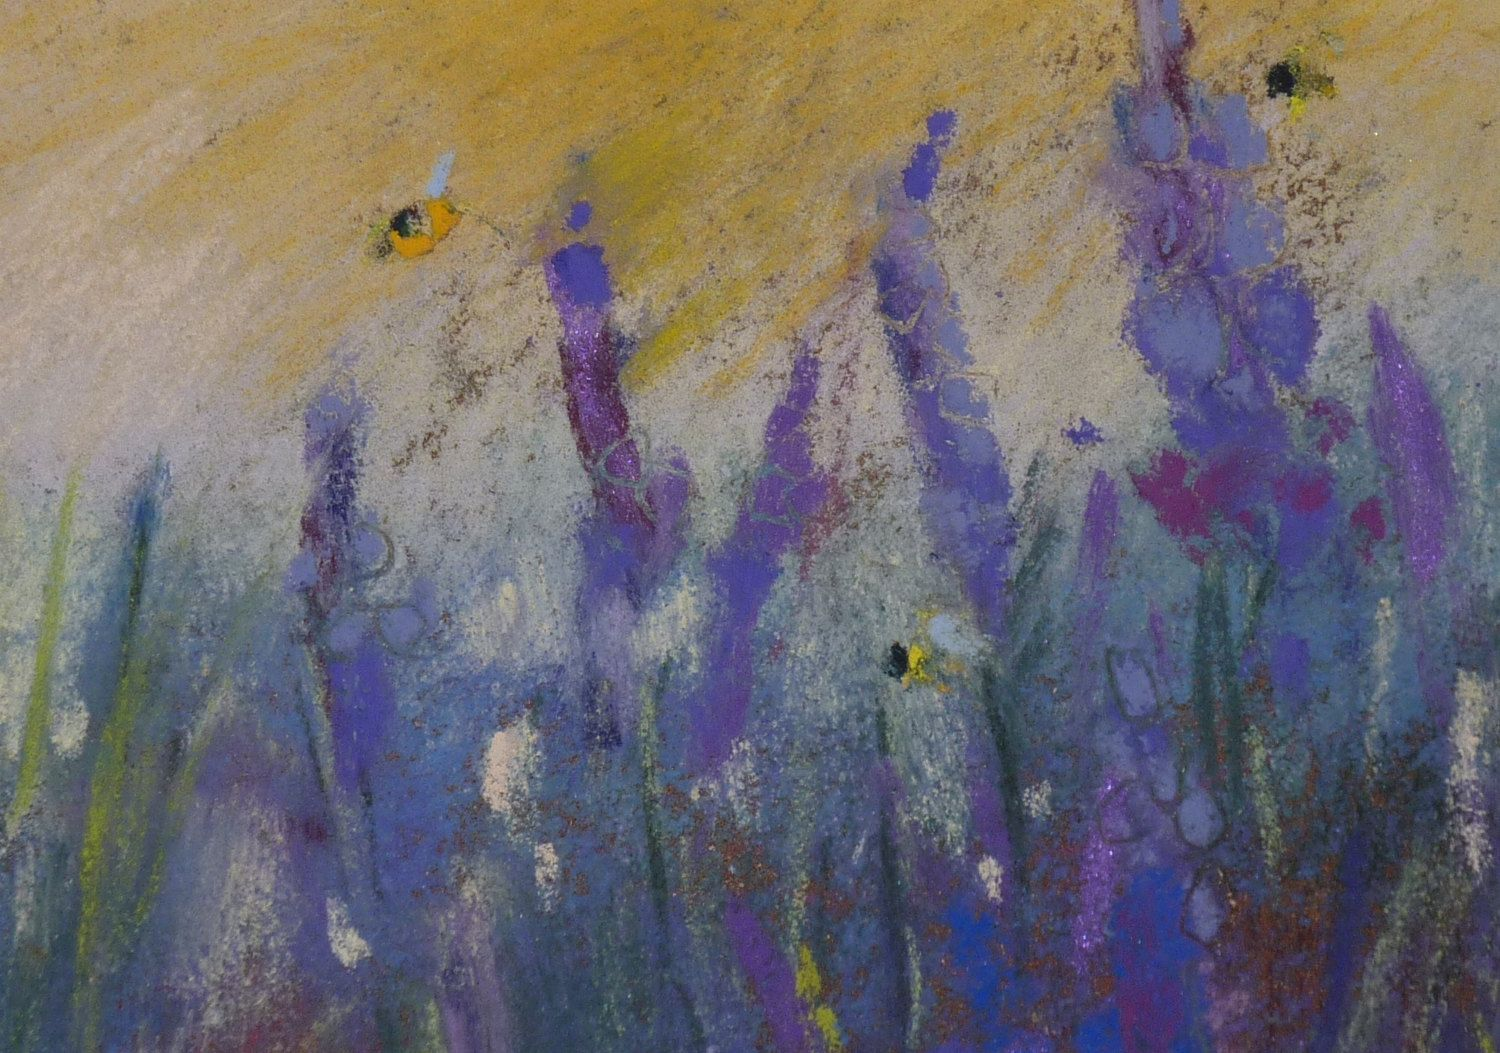 Purple Blue Wildflowers with Bumblebees por KarenMargulisFineArt